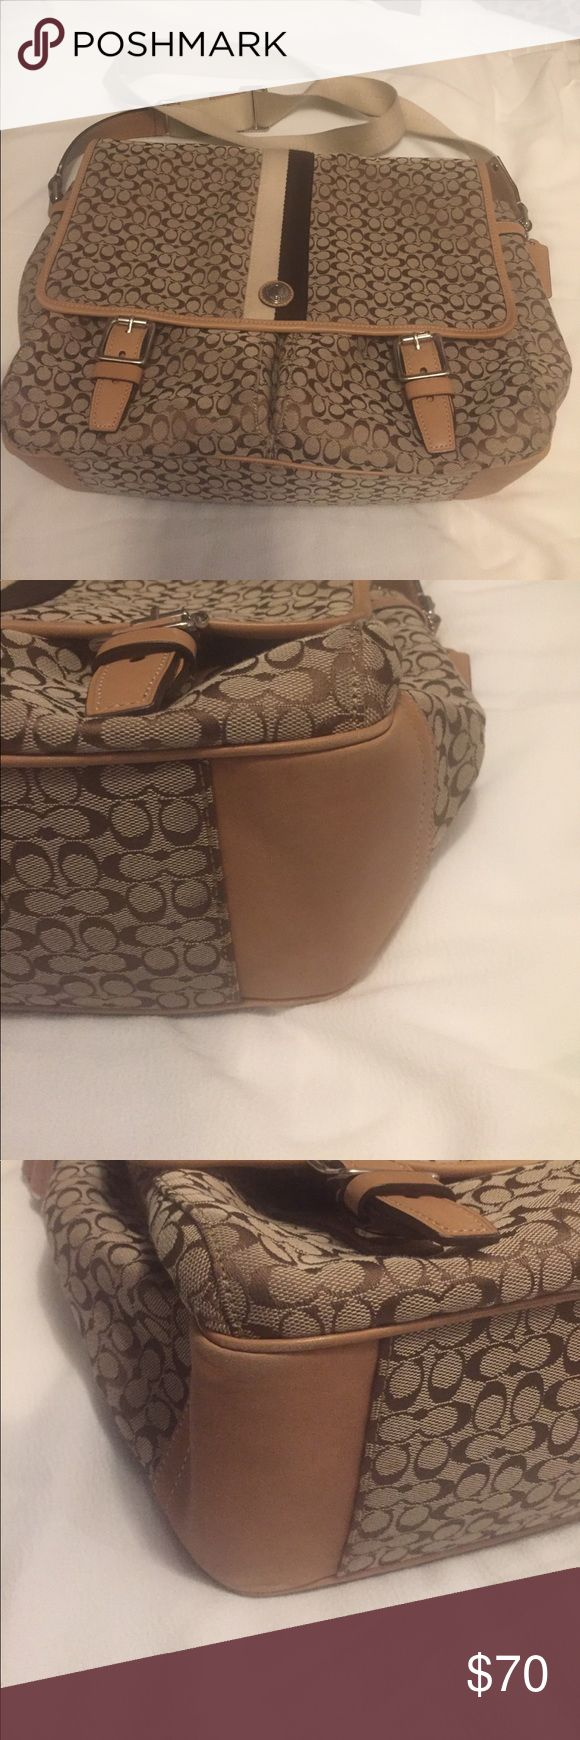 Authentic Coach Messenger bag 💼 This bag is practically perfect! Very little wear! It is perfect for work, school, or even a diaper bag! Coach Bags